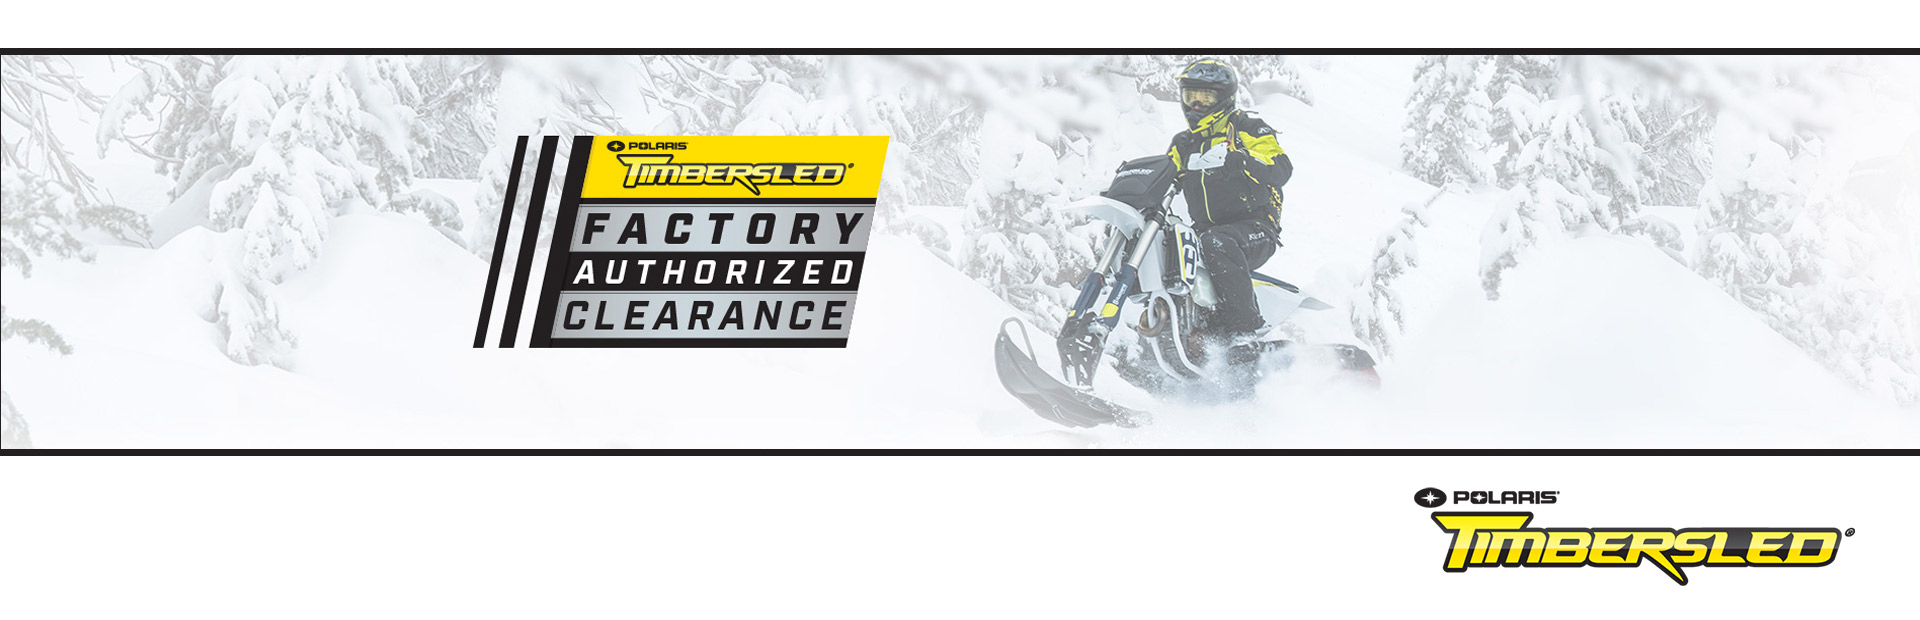 Timbersled Factory Authorized Clearance